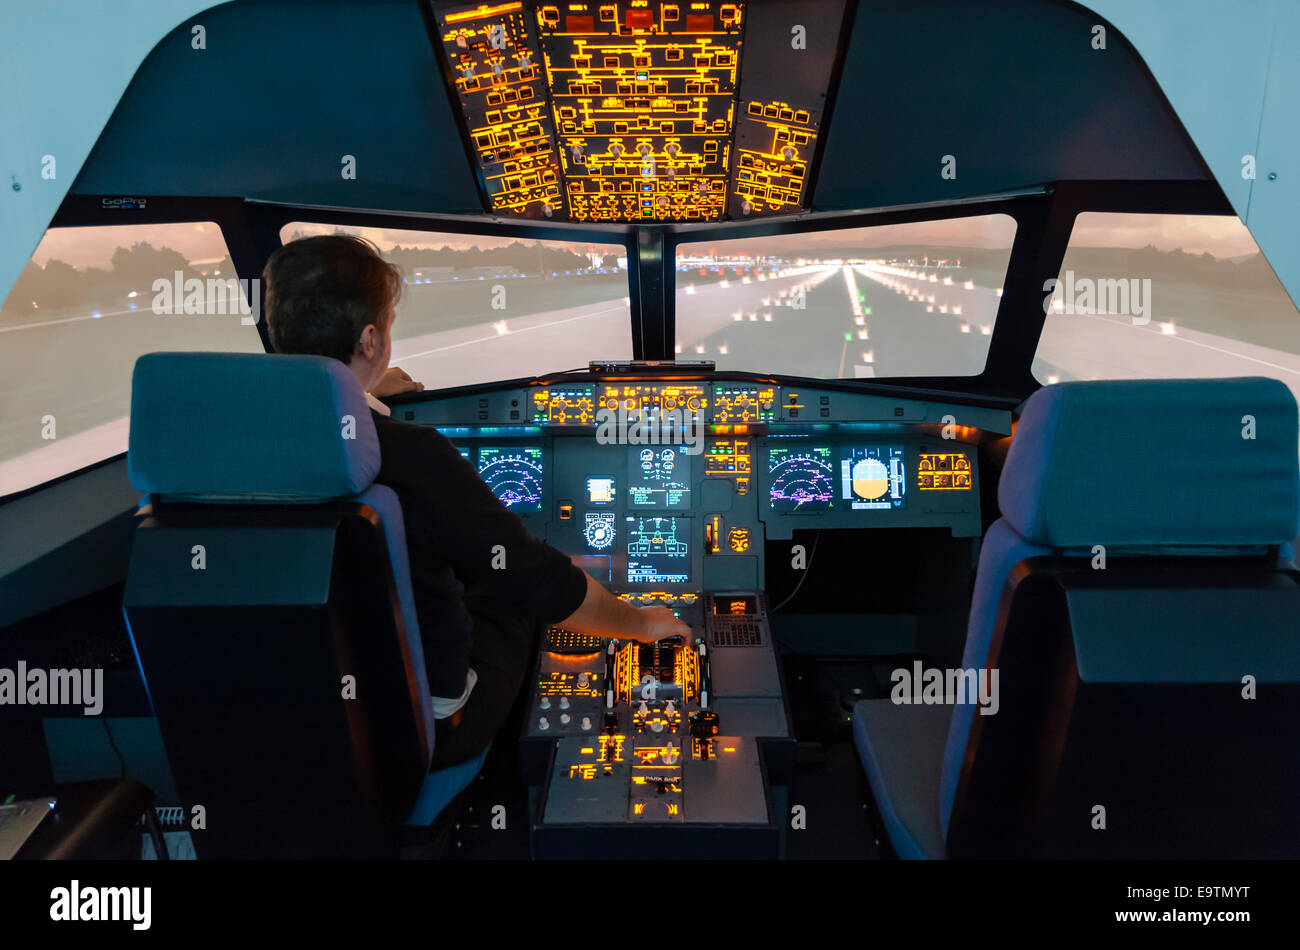 Cockpit of an Airbus A320 flight simulator that is used for